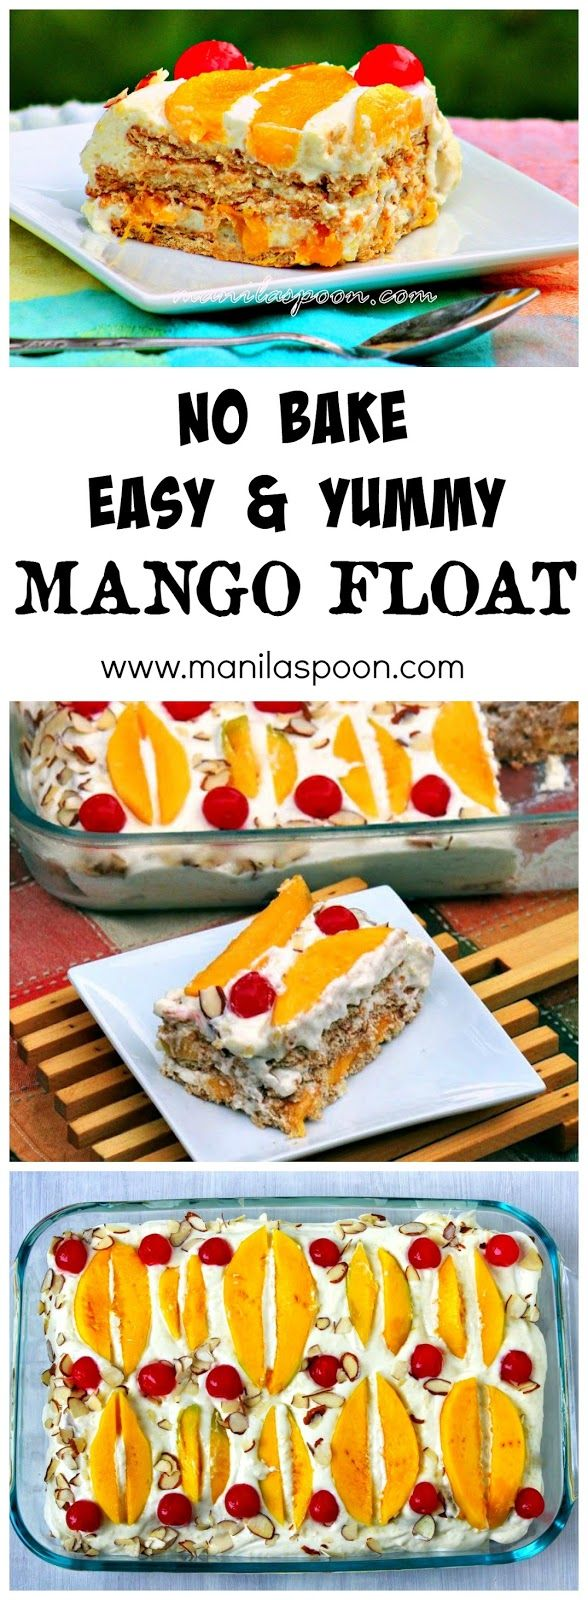 NO BAKING required for this fruity-licious chilled dessert. Juicy mangoes float on mango-flavored cream then garnished with red cherries. Super yum No Bake Mango Float!